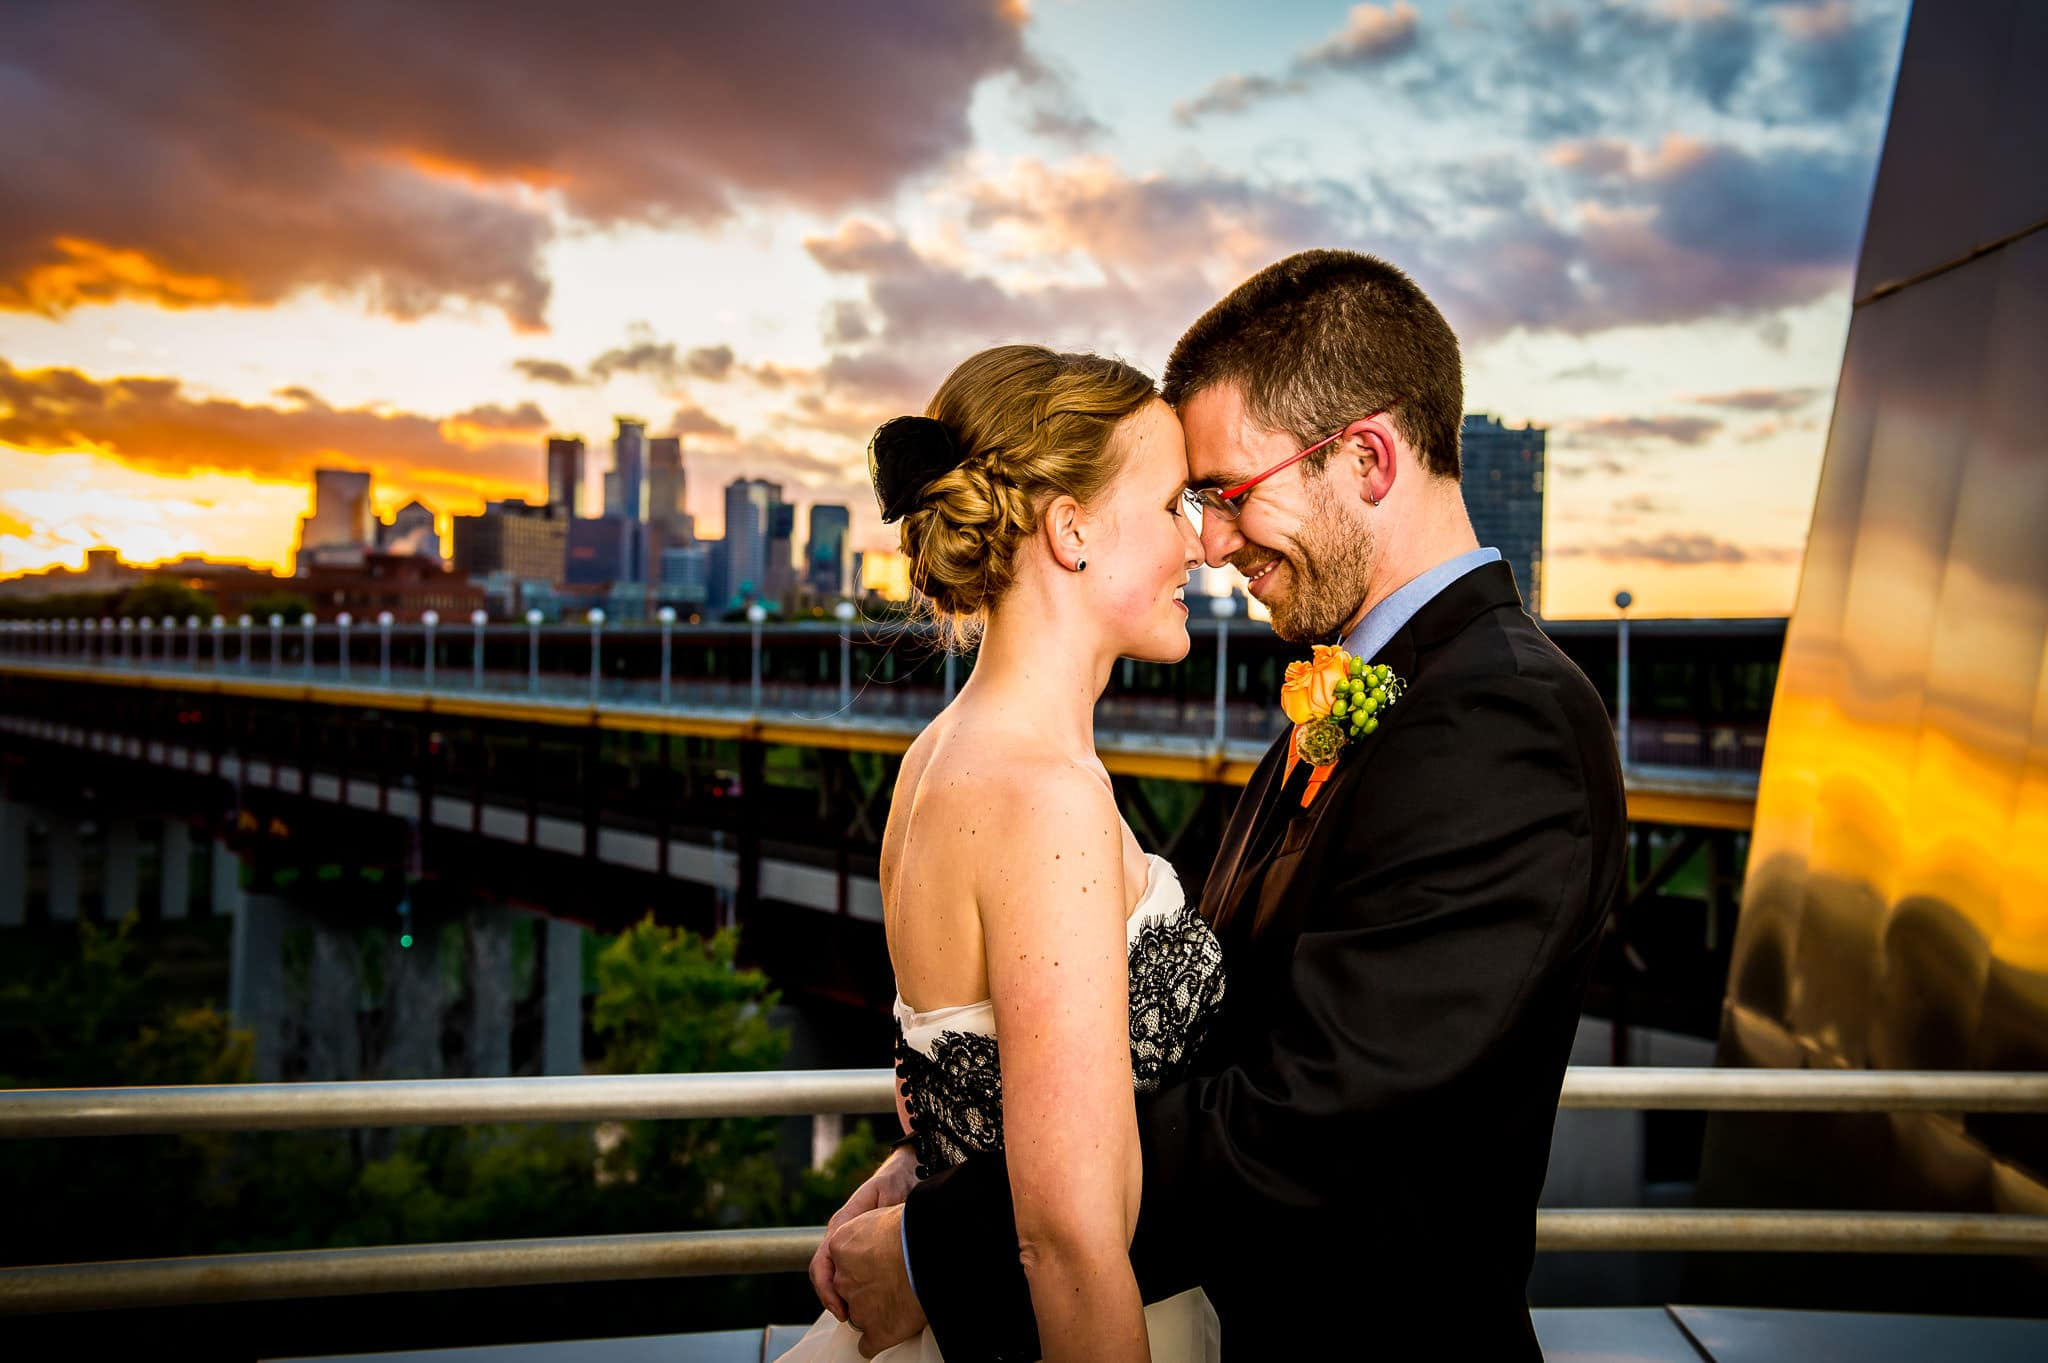 Couple embraces outside on the balcony, at sunset, during their Weisman Art Museum wedding